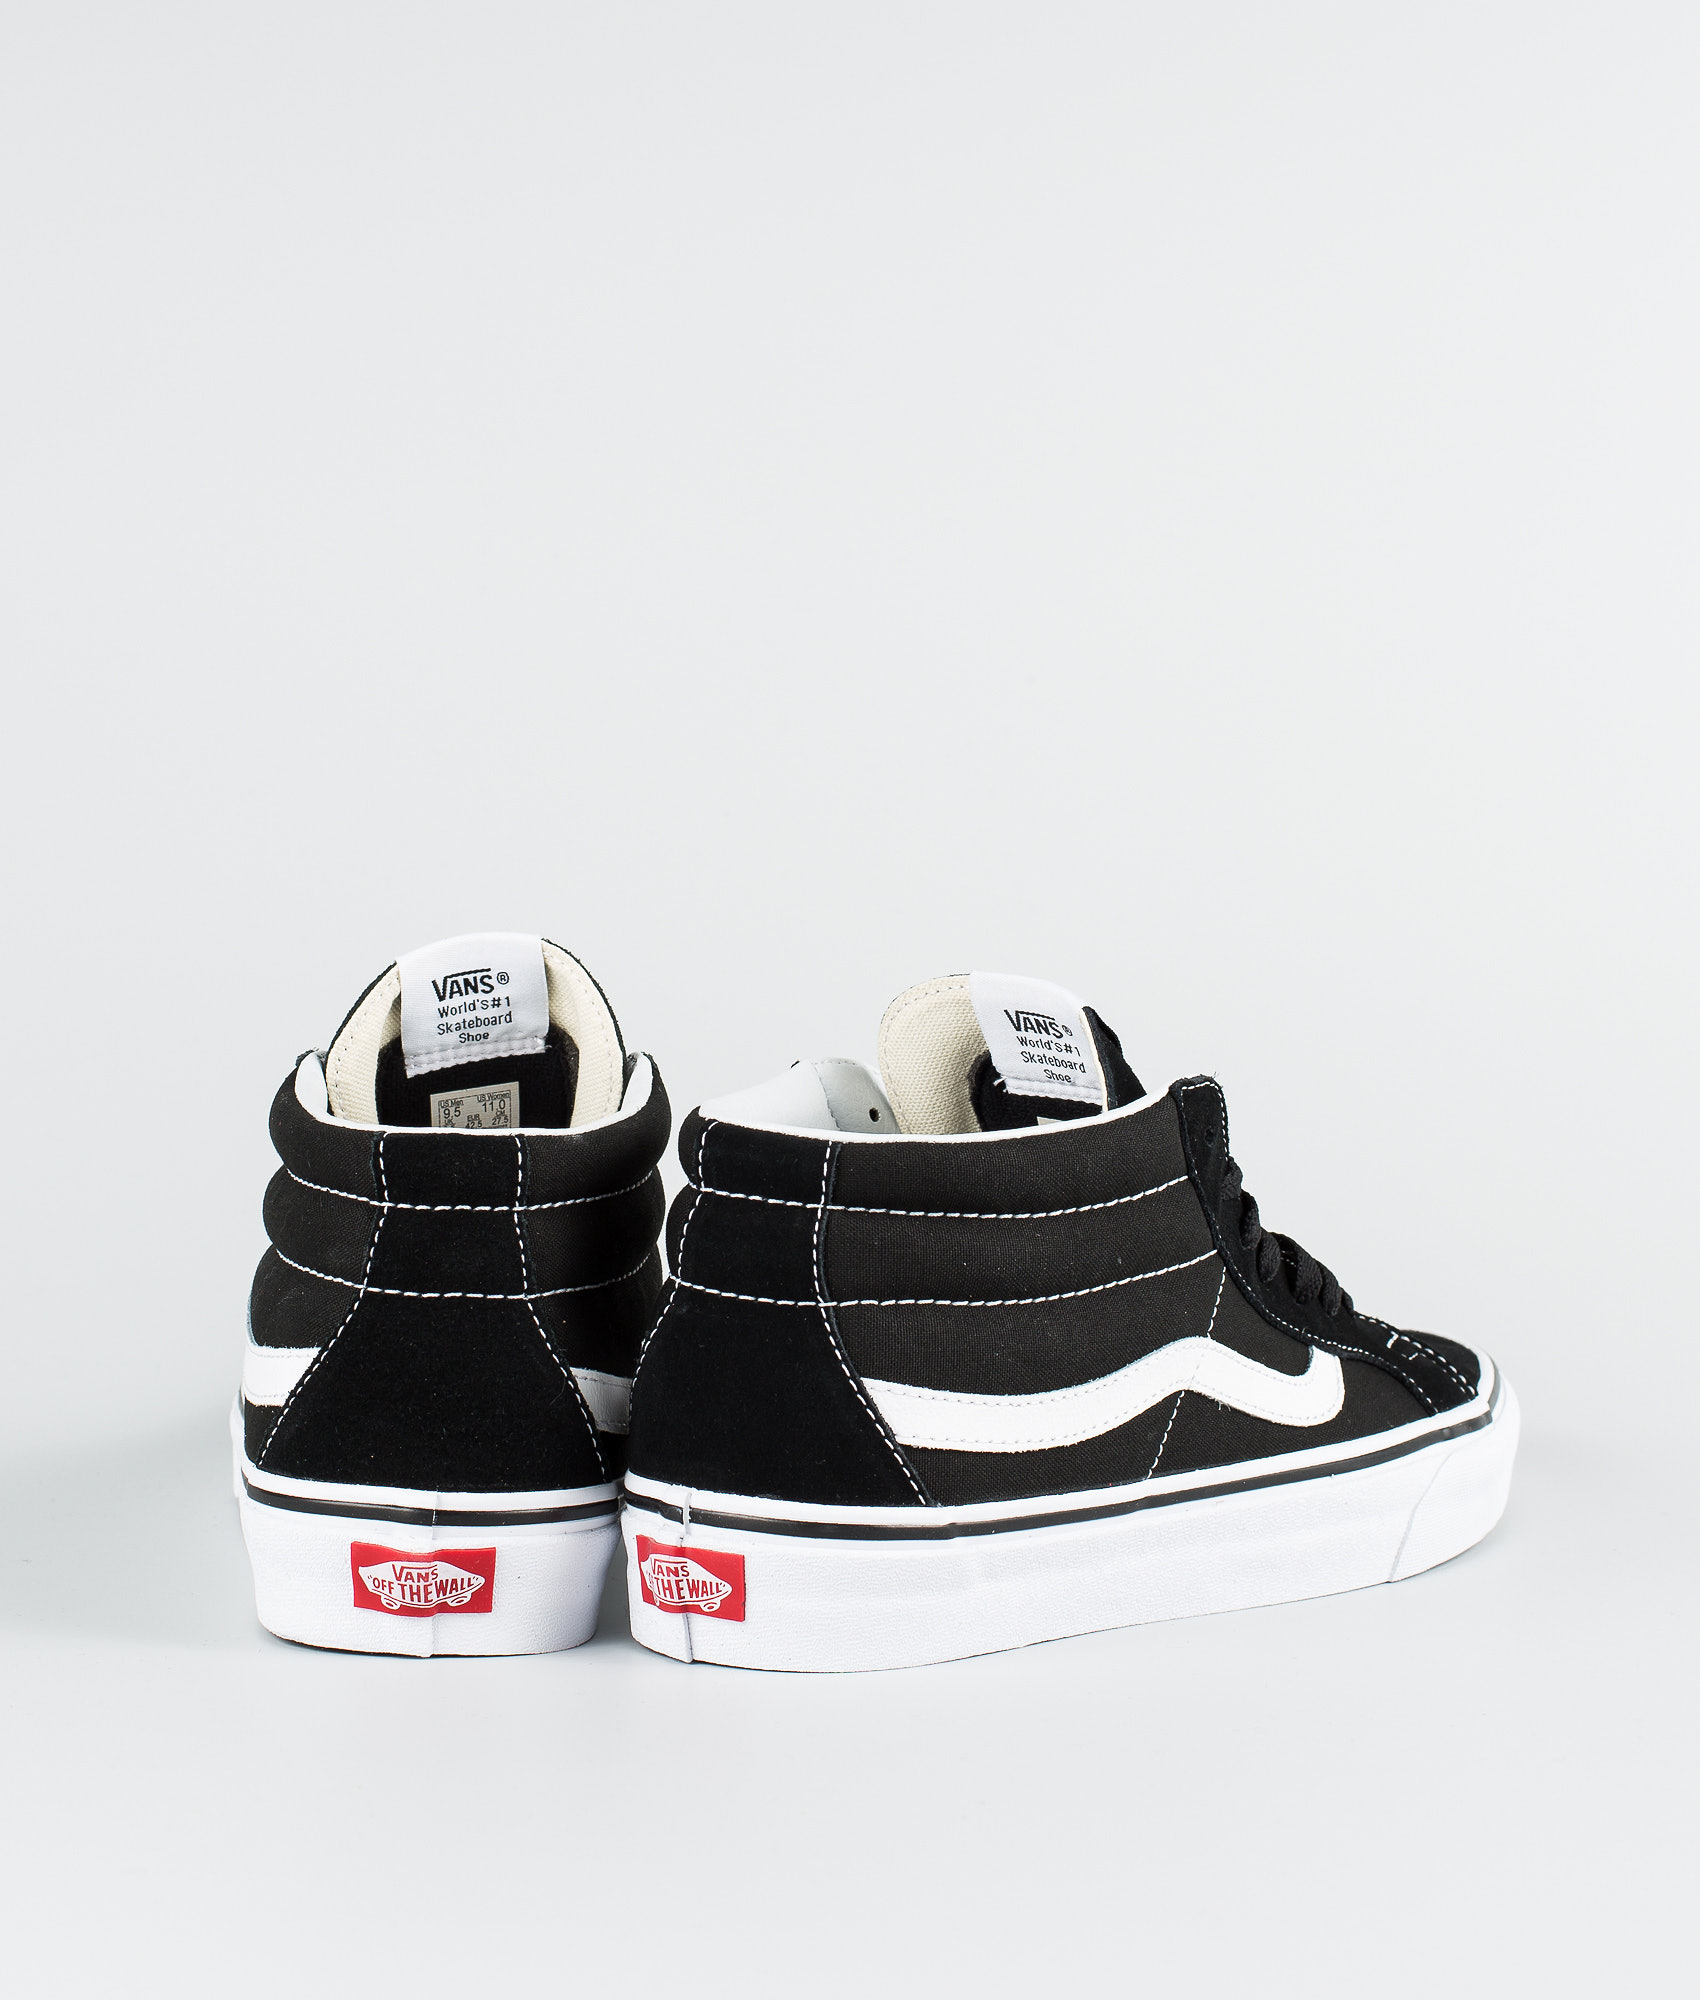 23b615909f Vans Sk8-Mid Reissue Shoes Black True White - Ridestore.com